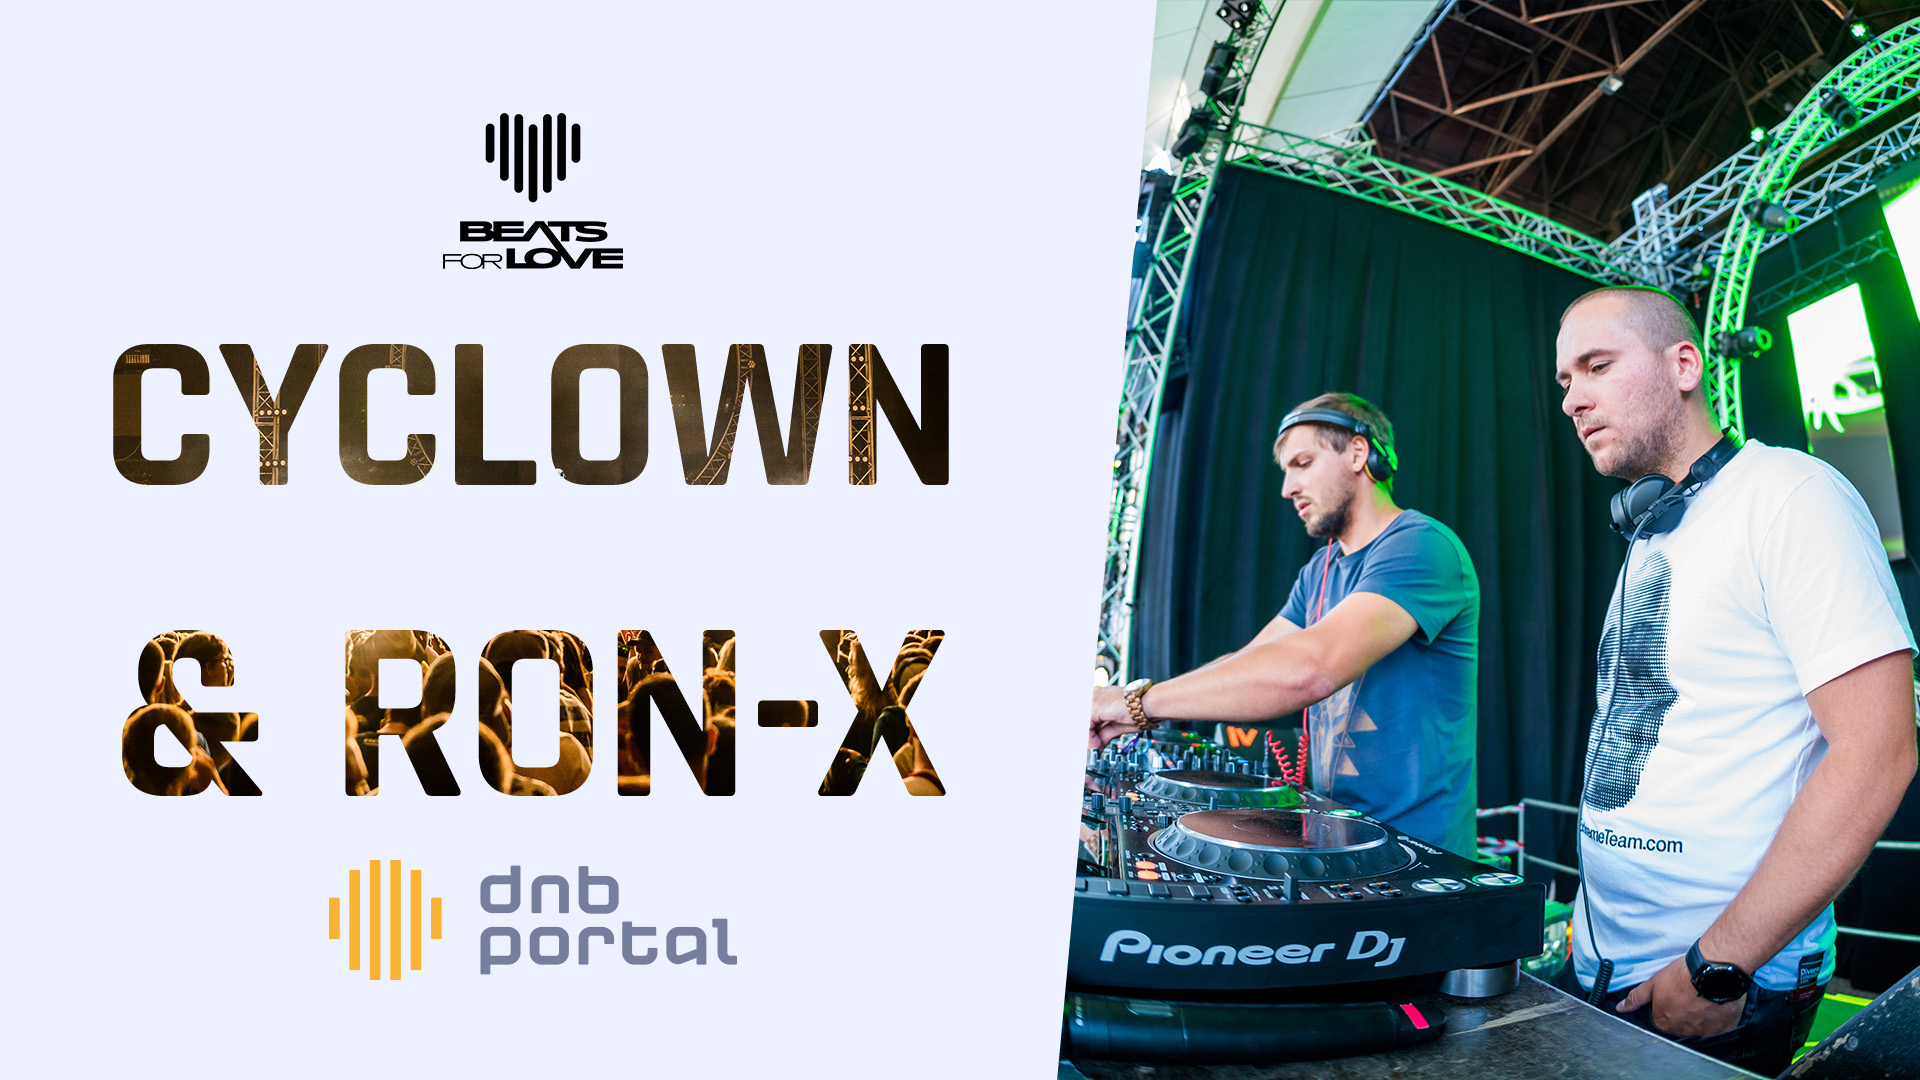 Cyclown & Ron-X - Beats for Love 2019